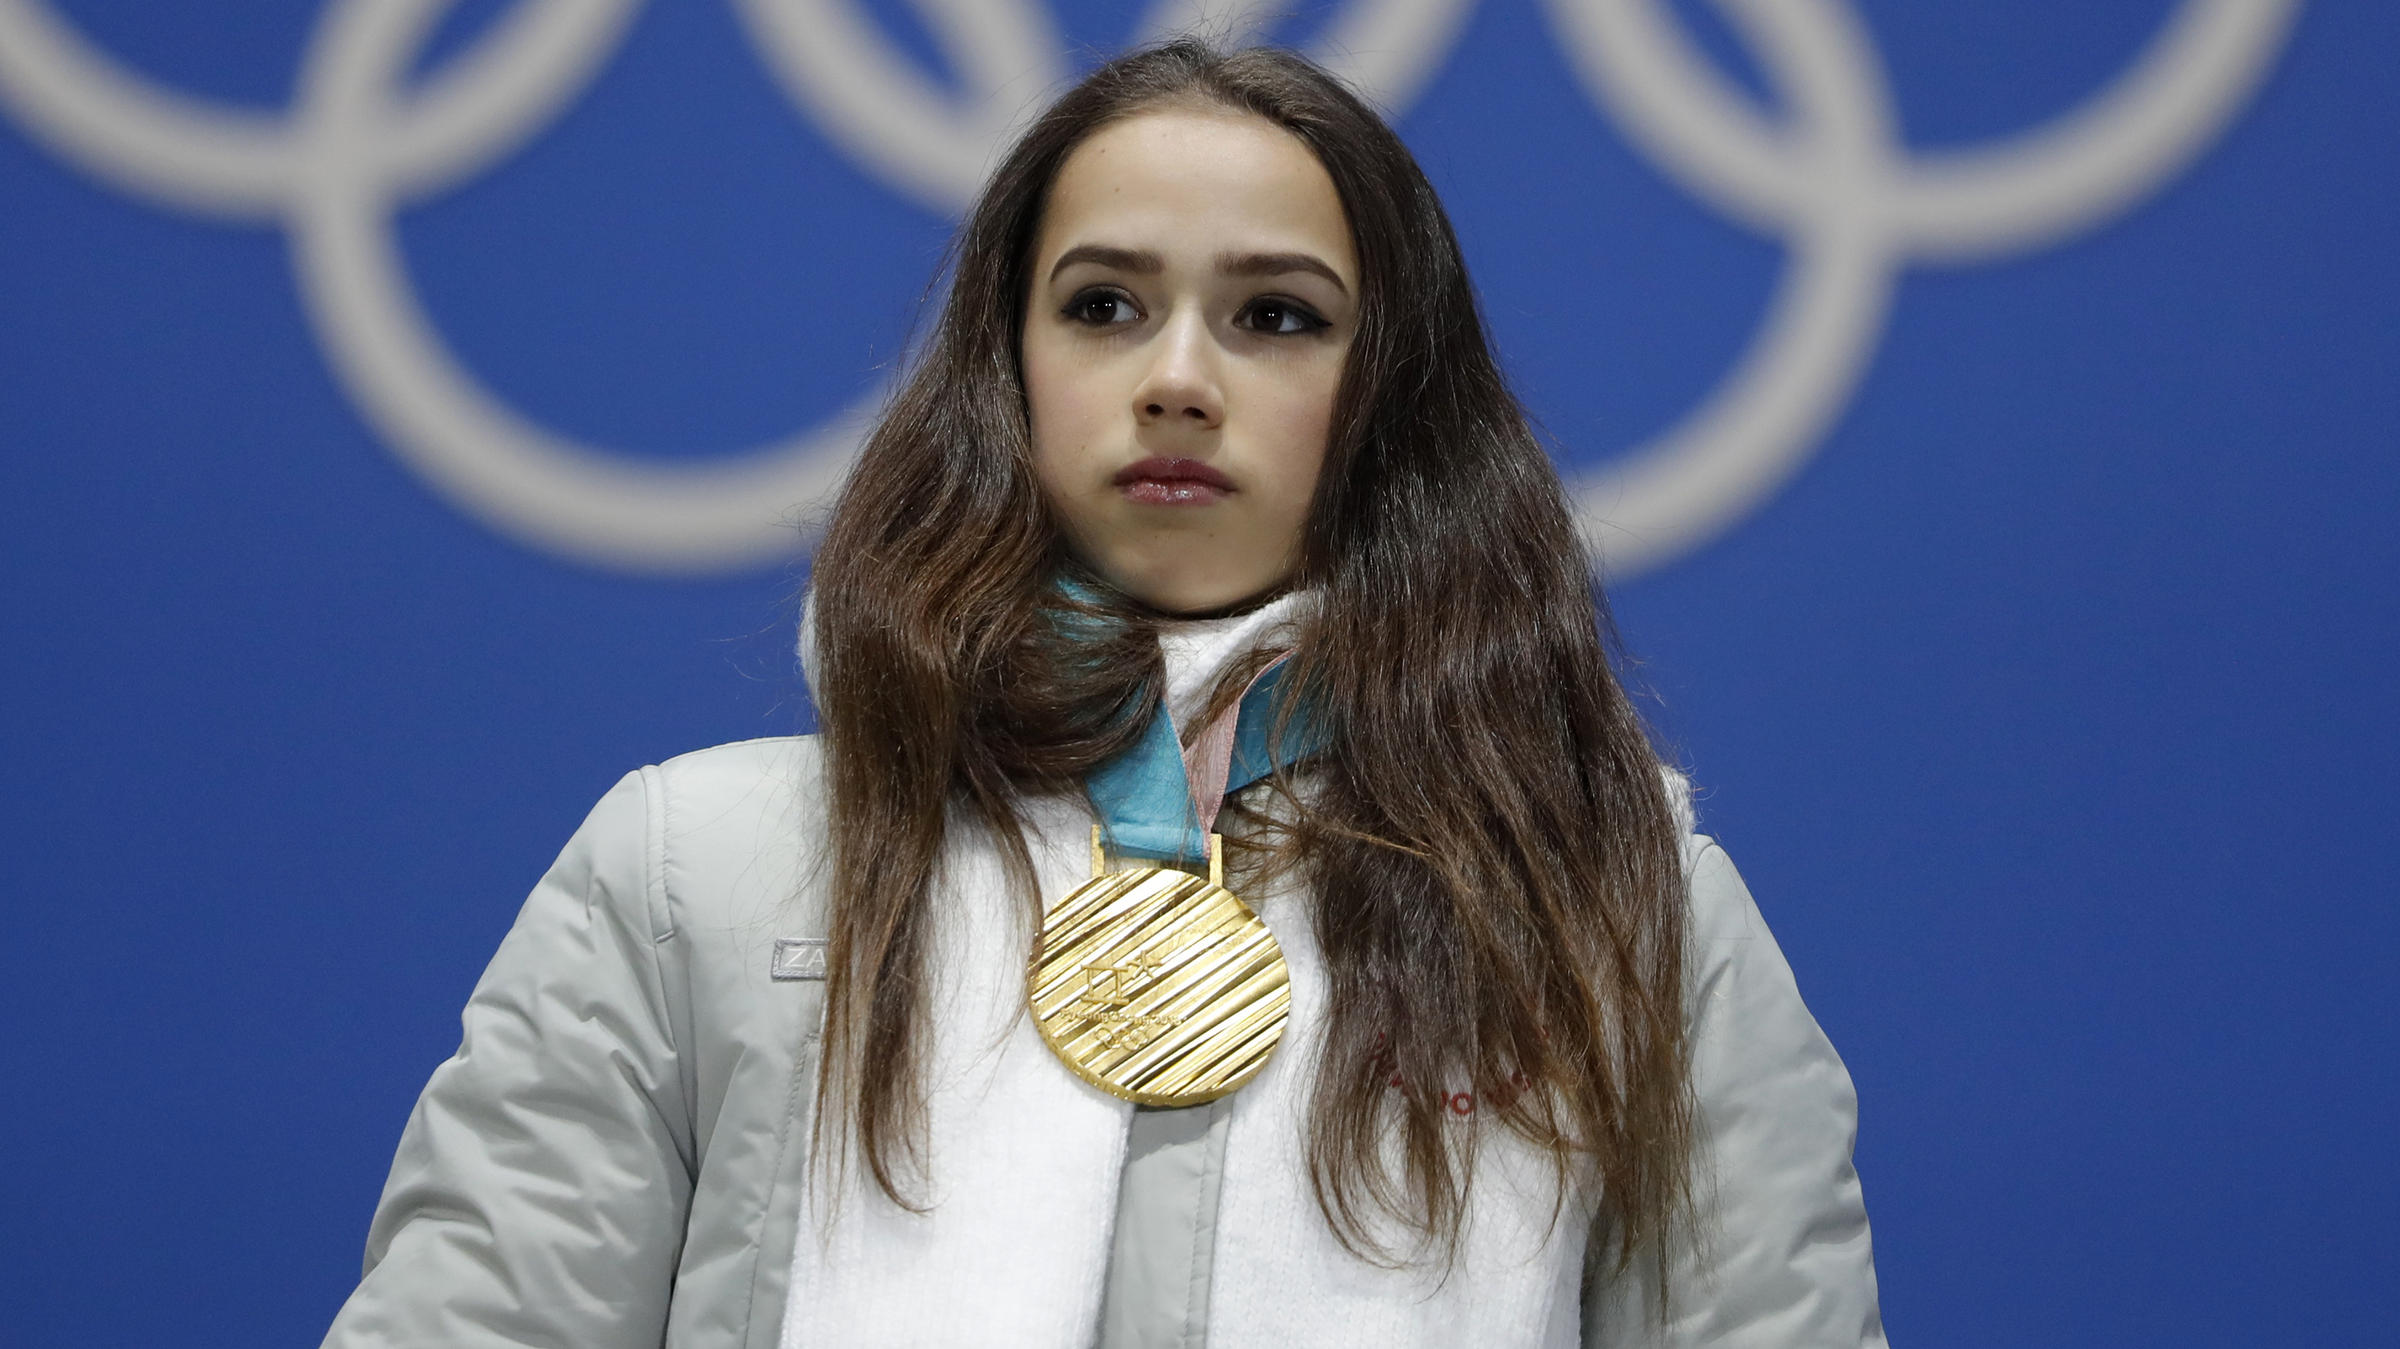 Gold Medalist Figure Skater Alina Zagitova An Olympic Athlete From Russia Heard The Olympics Anthem As She Stood On Podium For Her Medal Ceremony